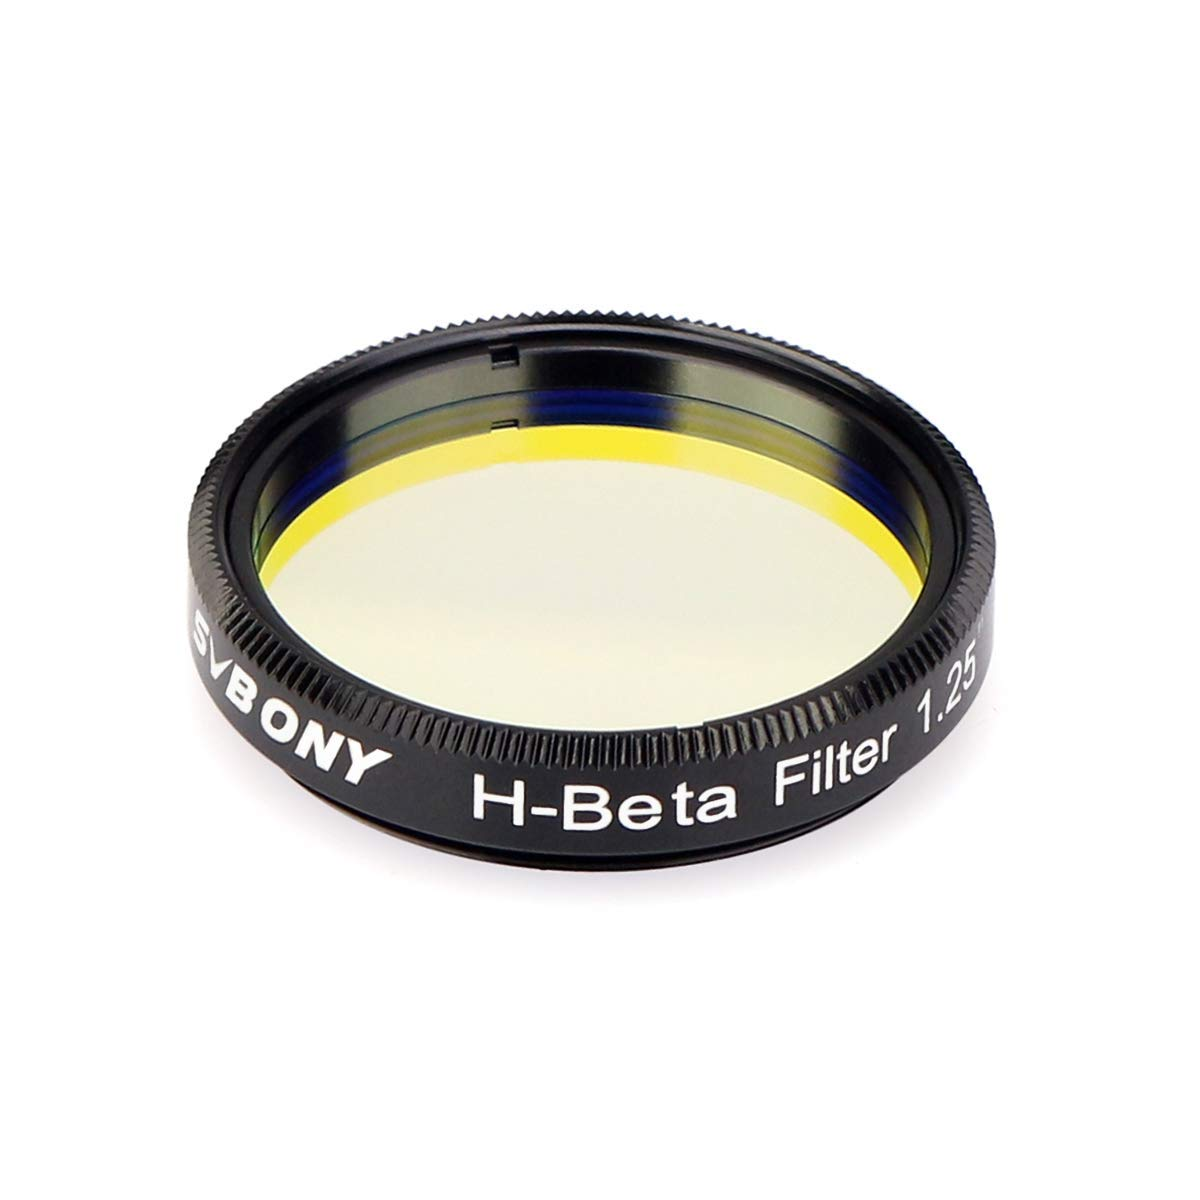 SVBONY SV132 H-Beta Filter 25nm 1.25 inches Eyepiece Filter for Horsehead Nebula California and Cocoon Nebulae in Dark Skies by SVBONY